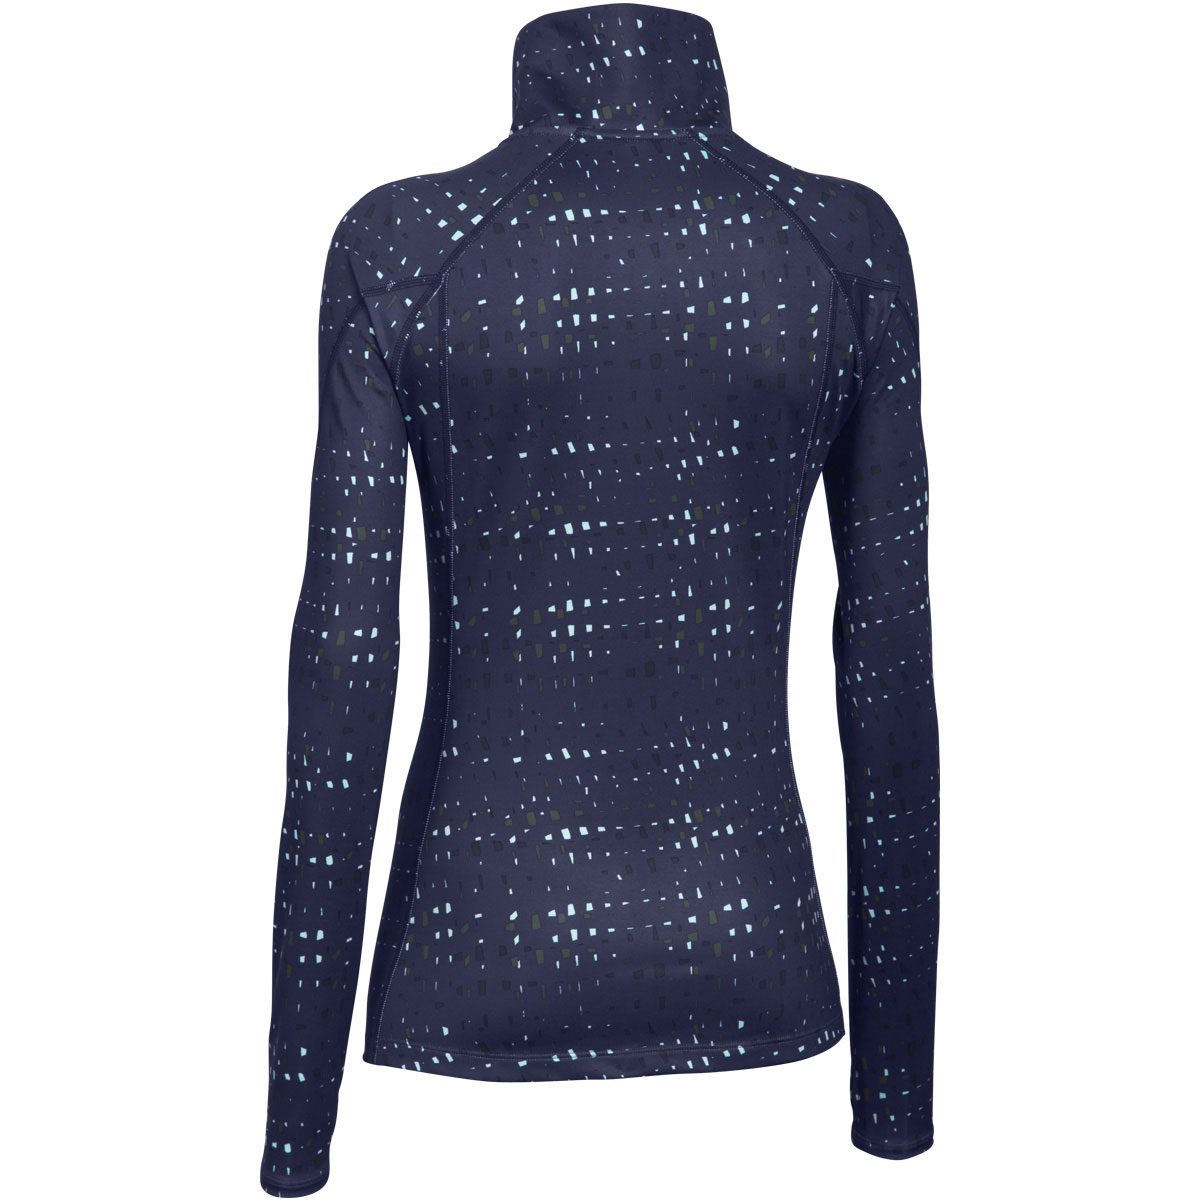 Under Armour 2015 Womens Armour ColdGear Cozy Printed Half Zip Thermal Pullover